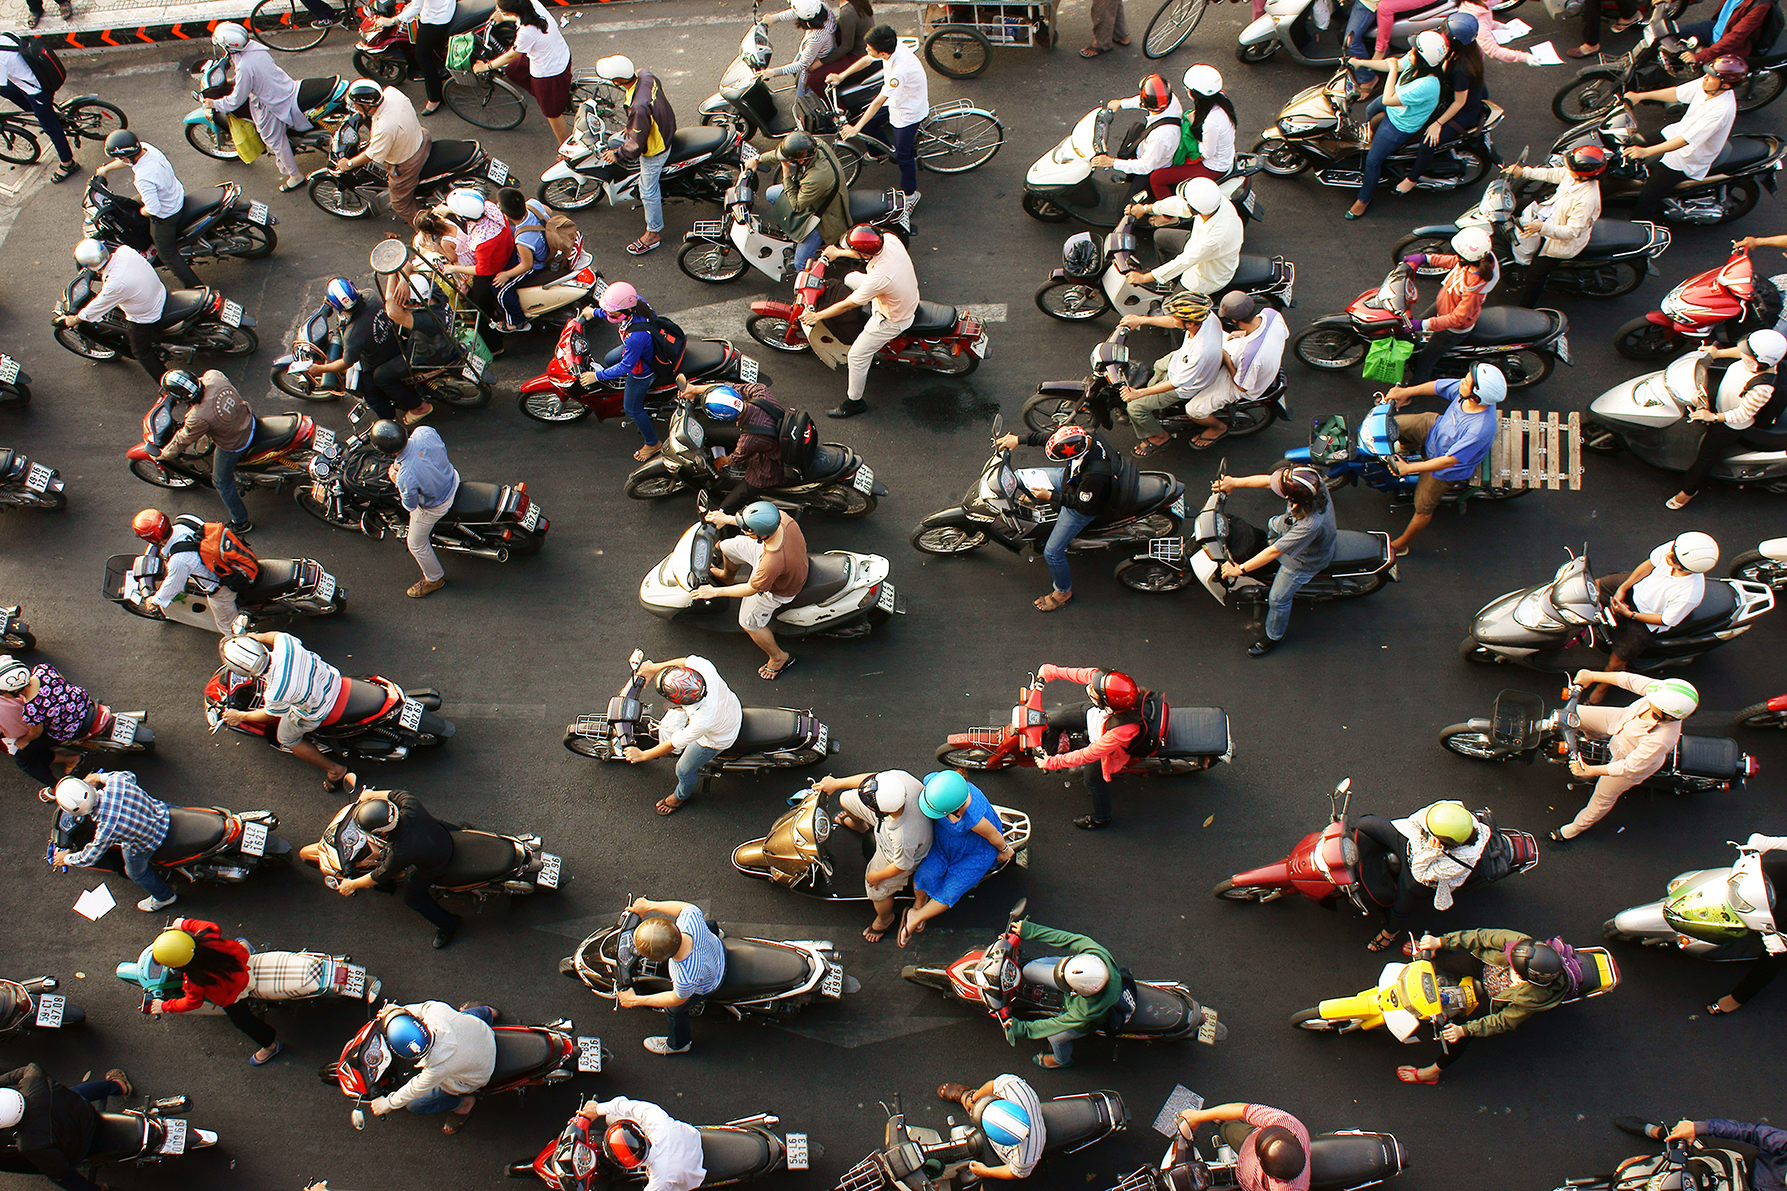 Ariel view of a lot of people on motorbikes